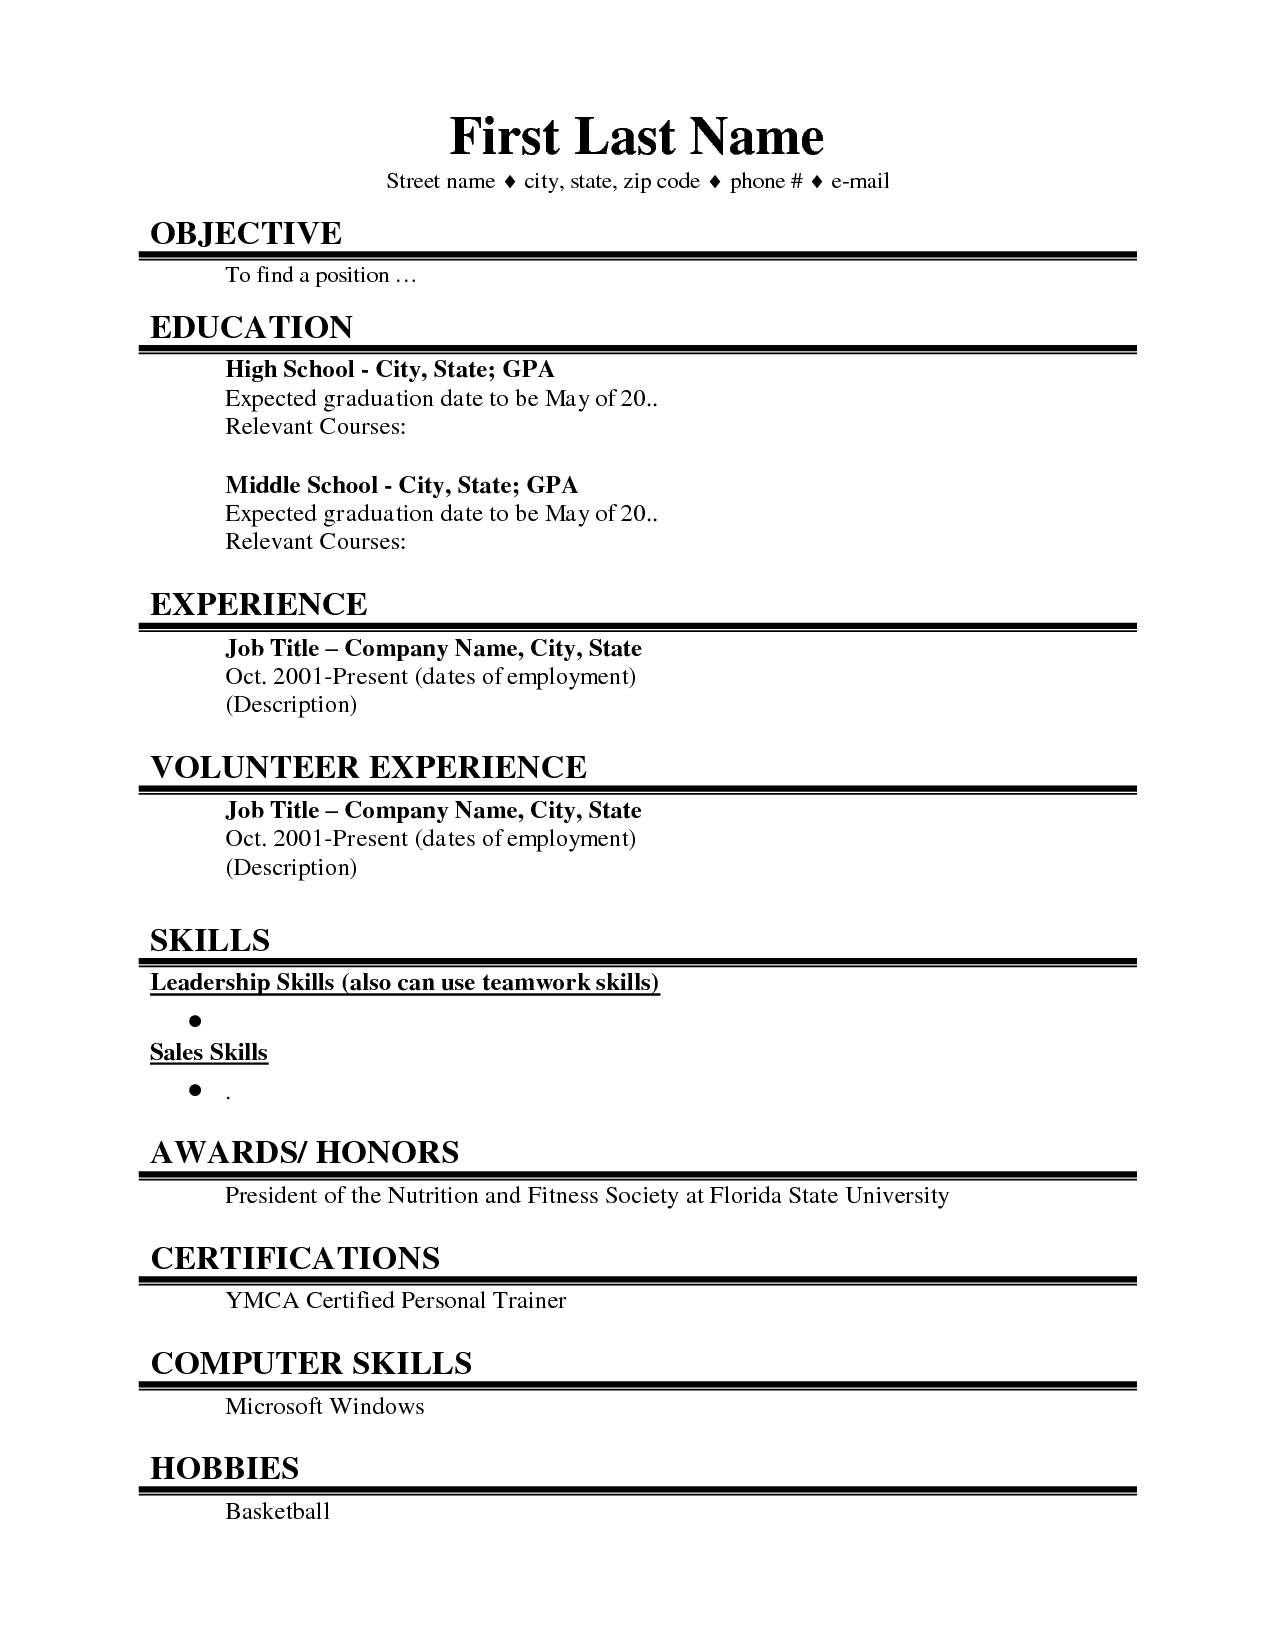 Resume Examples. resume template for college student internships